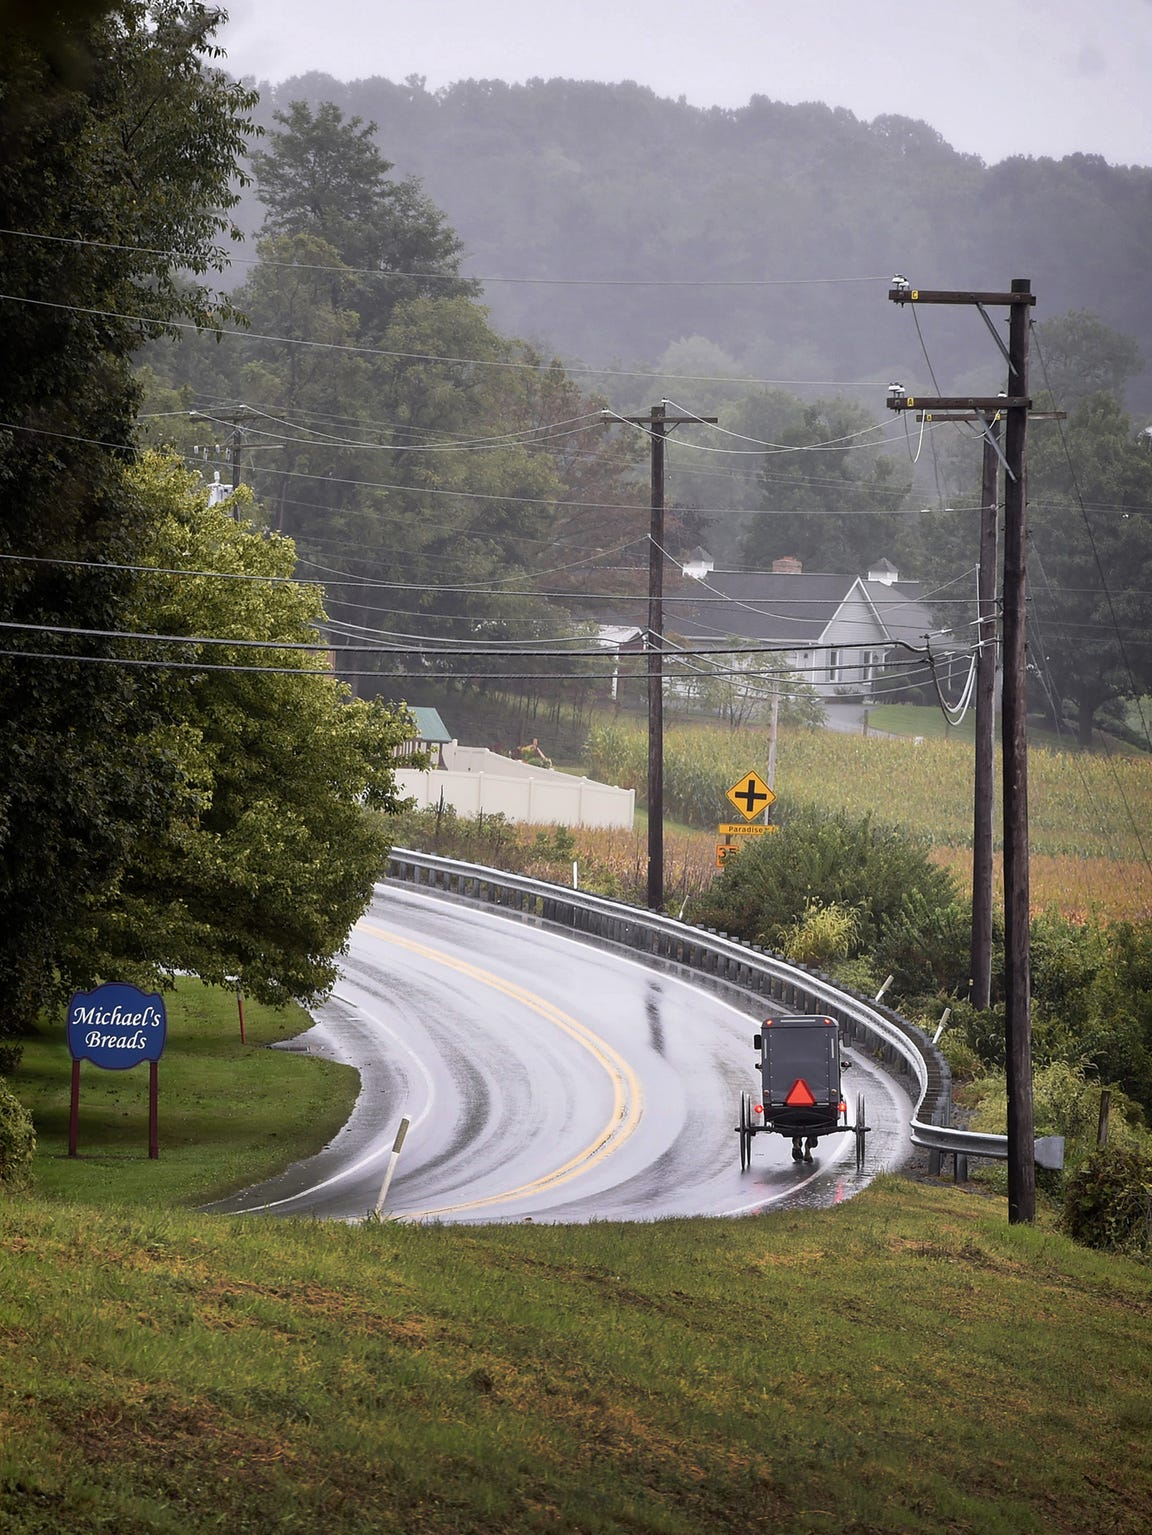 An Amish buggy travels down a long stretch of road